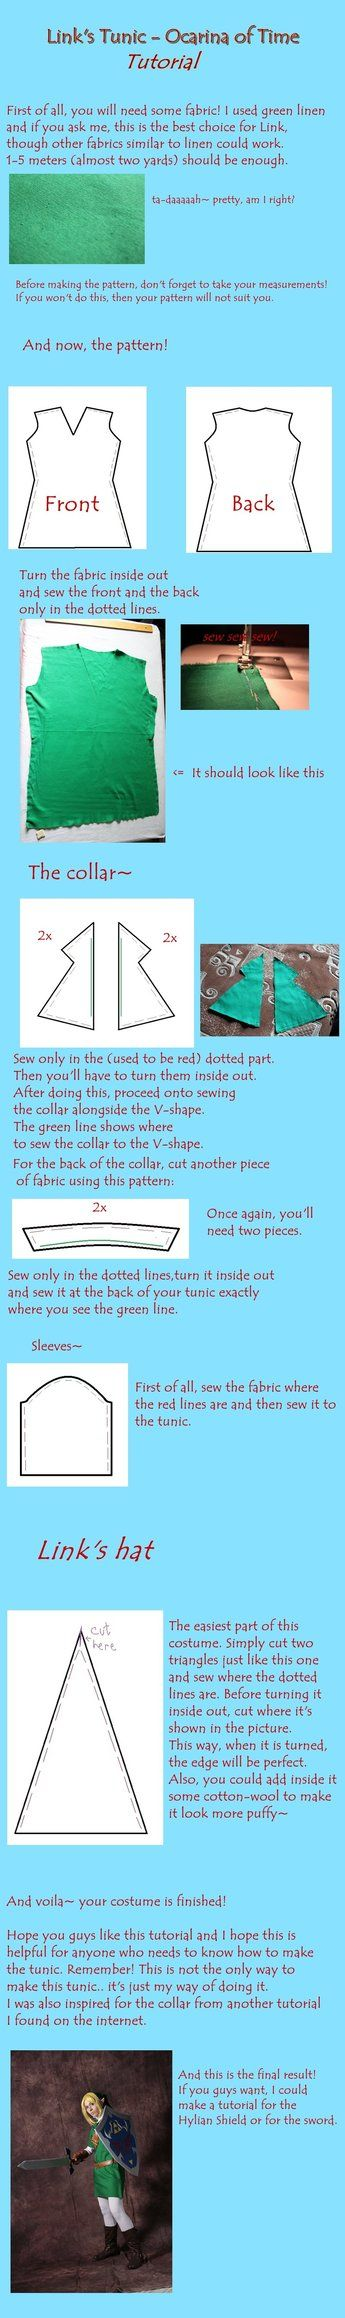 Tutorial how to links shirt by eressea sama on deviantart art tutorial how to links shirt by eressea sama on deviantart art and cool stuffinspiration pinterest deviantart tutorials and cosplay baditri Images